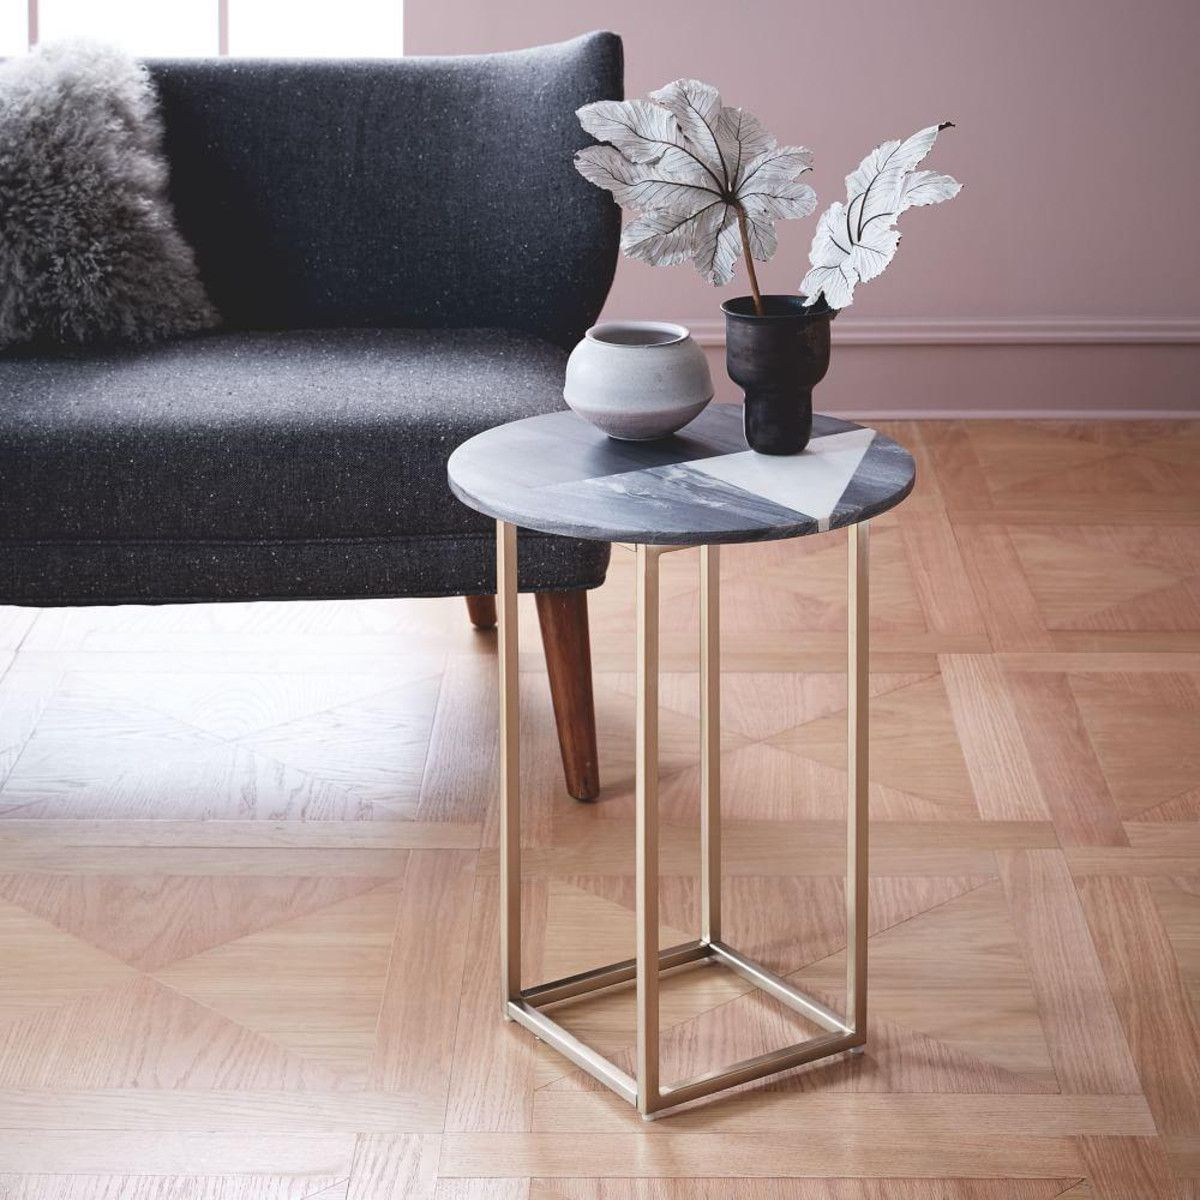 Marquetry Marble Side Table Marble Top Side Table Marble Side Tables Side Table [ 1200 x 1200 Pixel ]